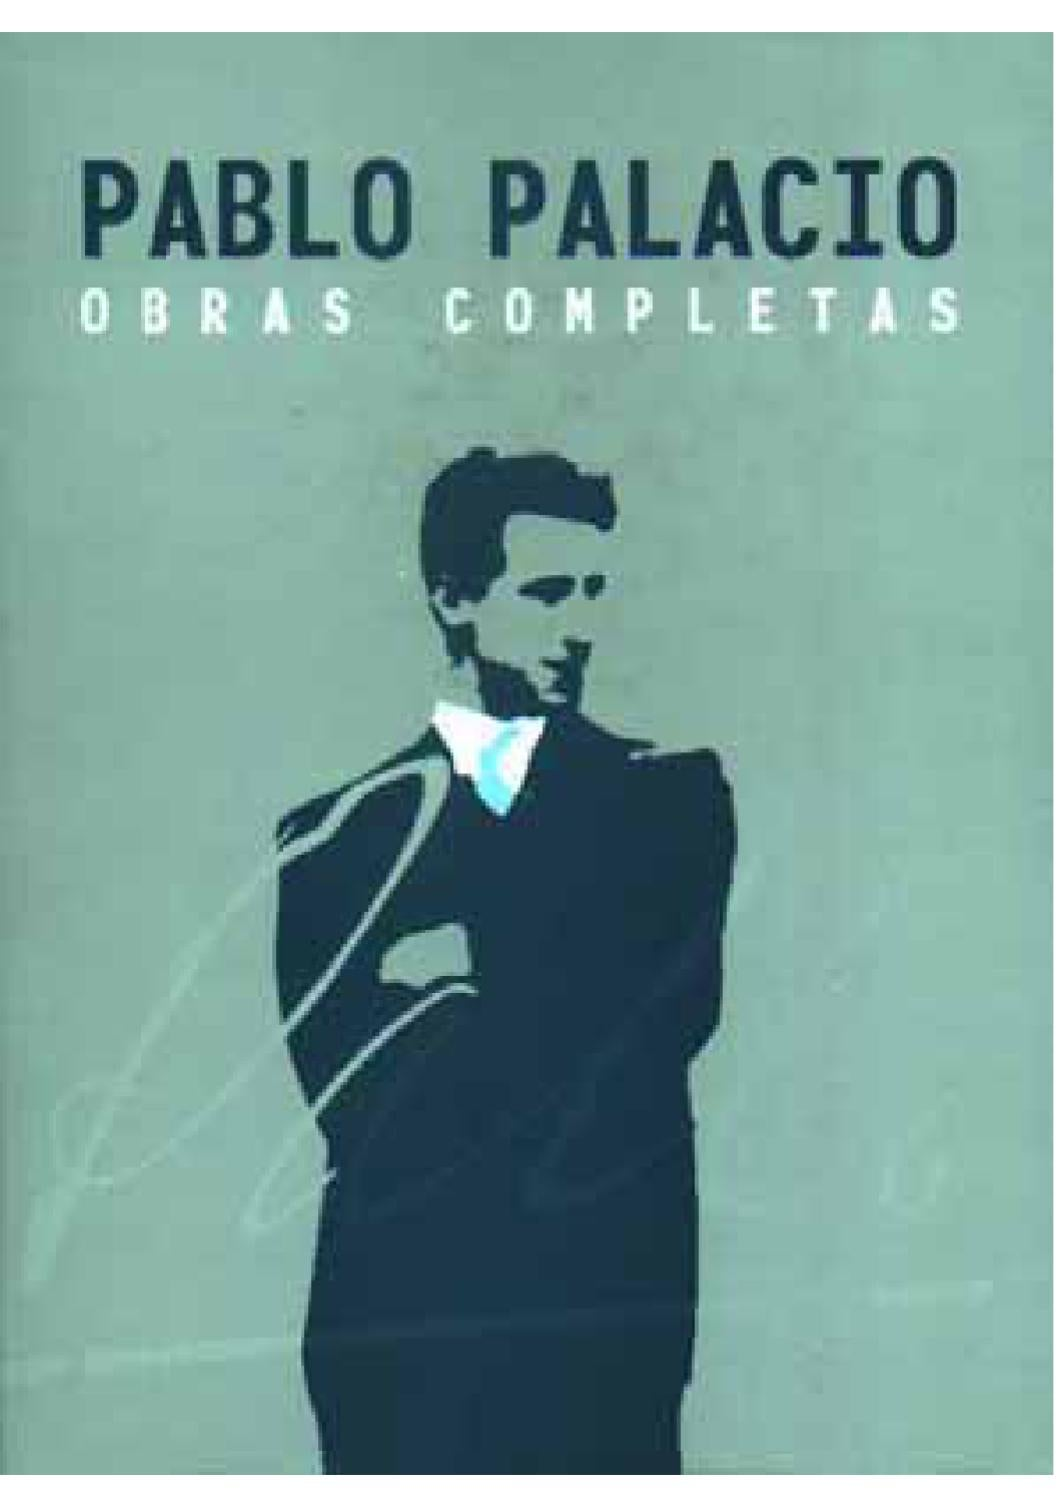 Palacios Onorato Cecilia Obras By Issuu CompletasPablo WIYED9eH2